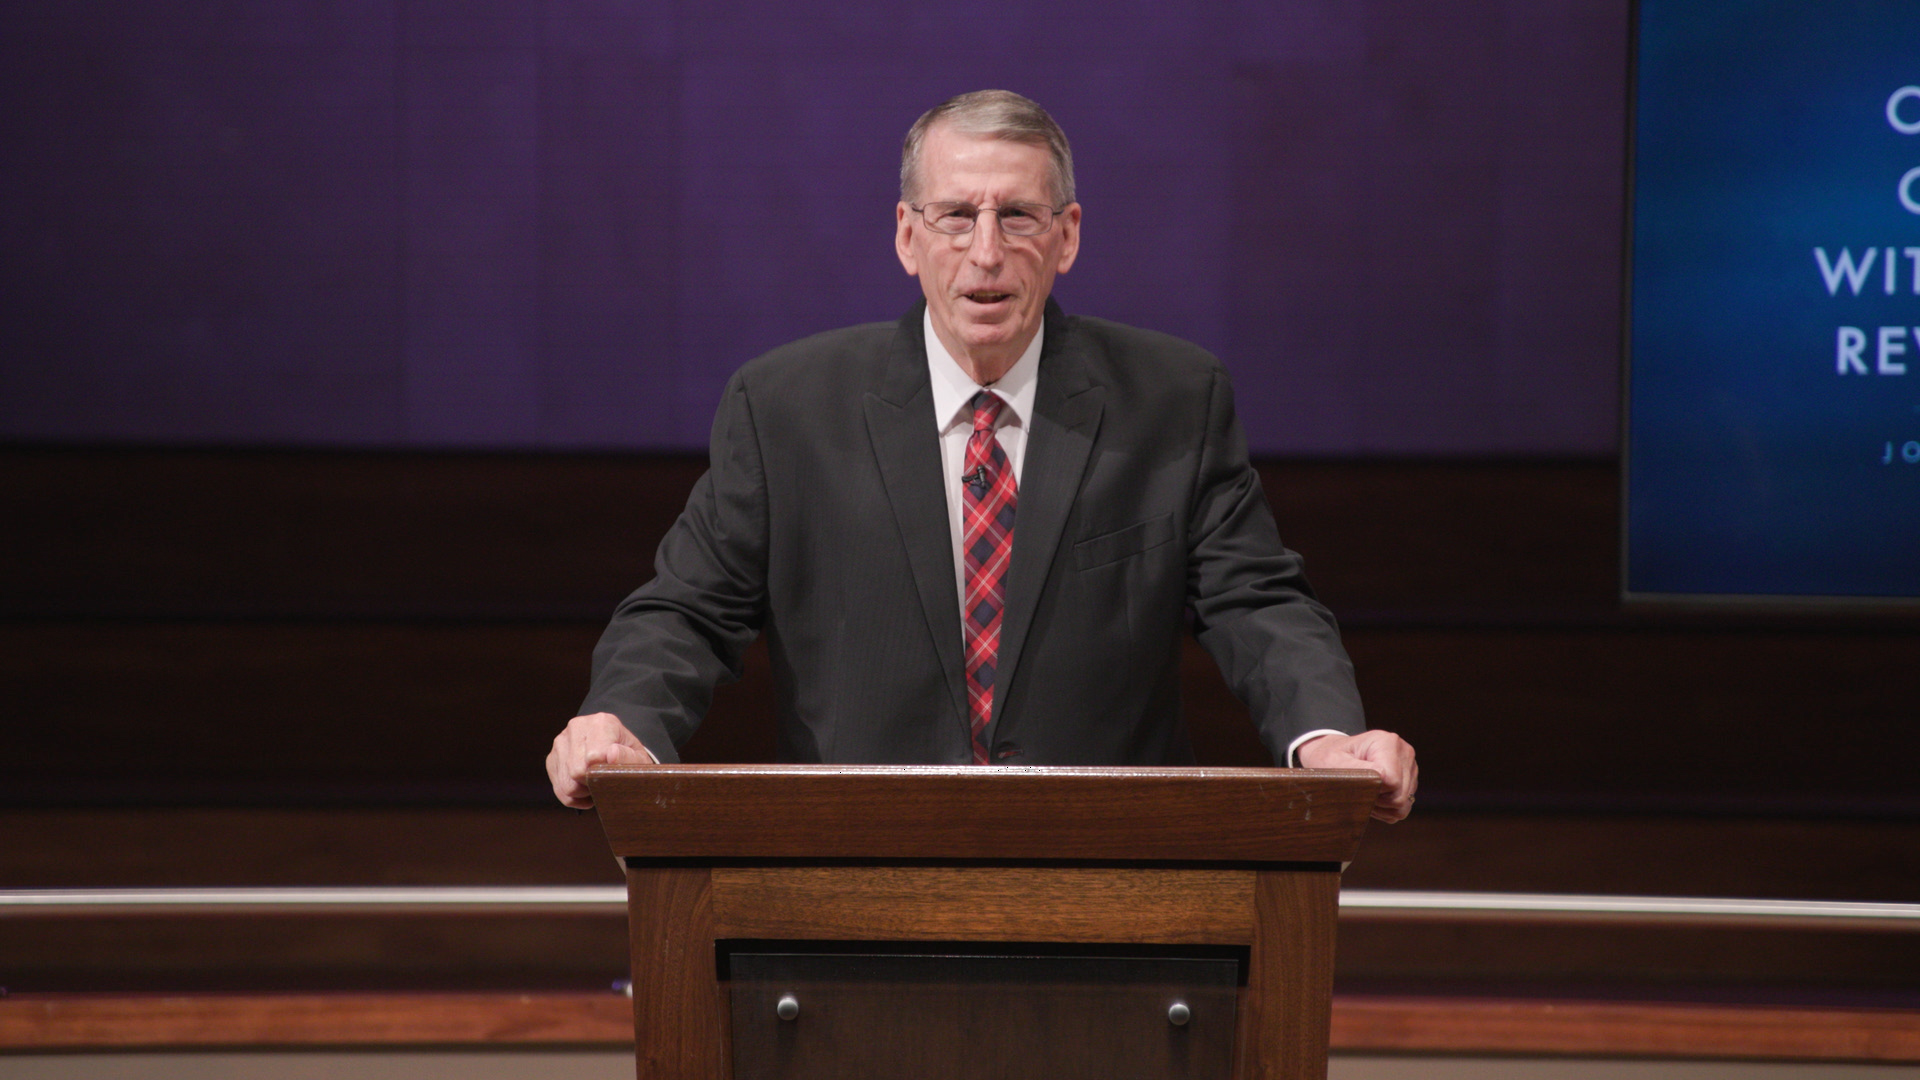 Dr. John Goetsch: Only One Without Revival